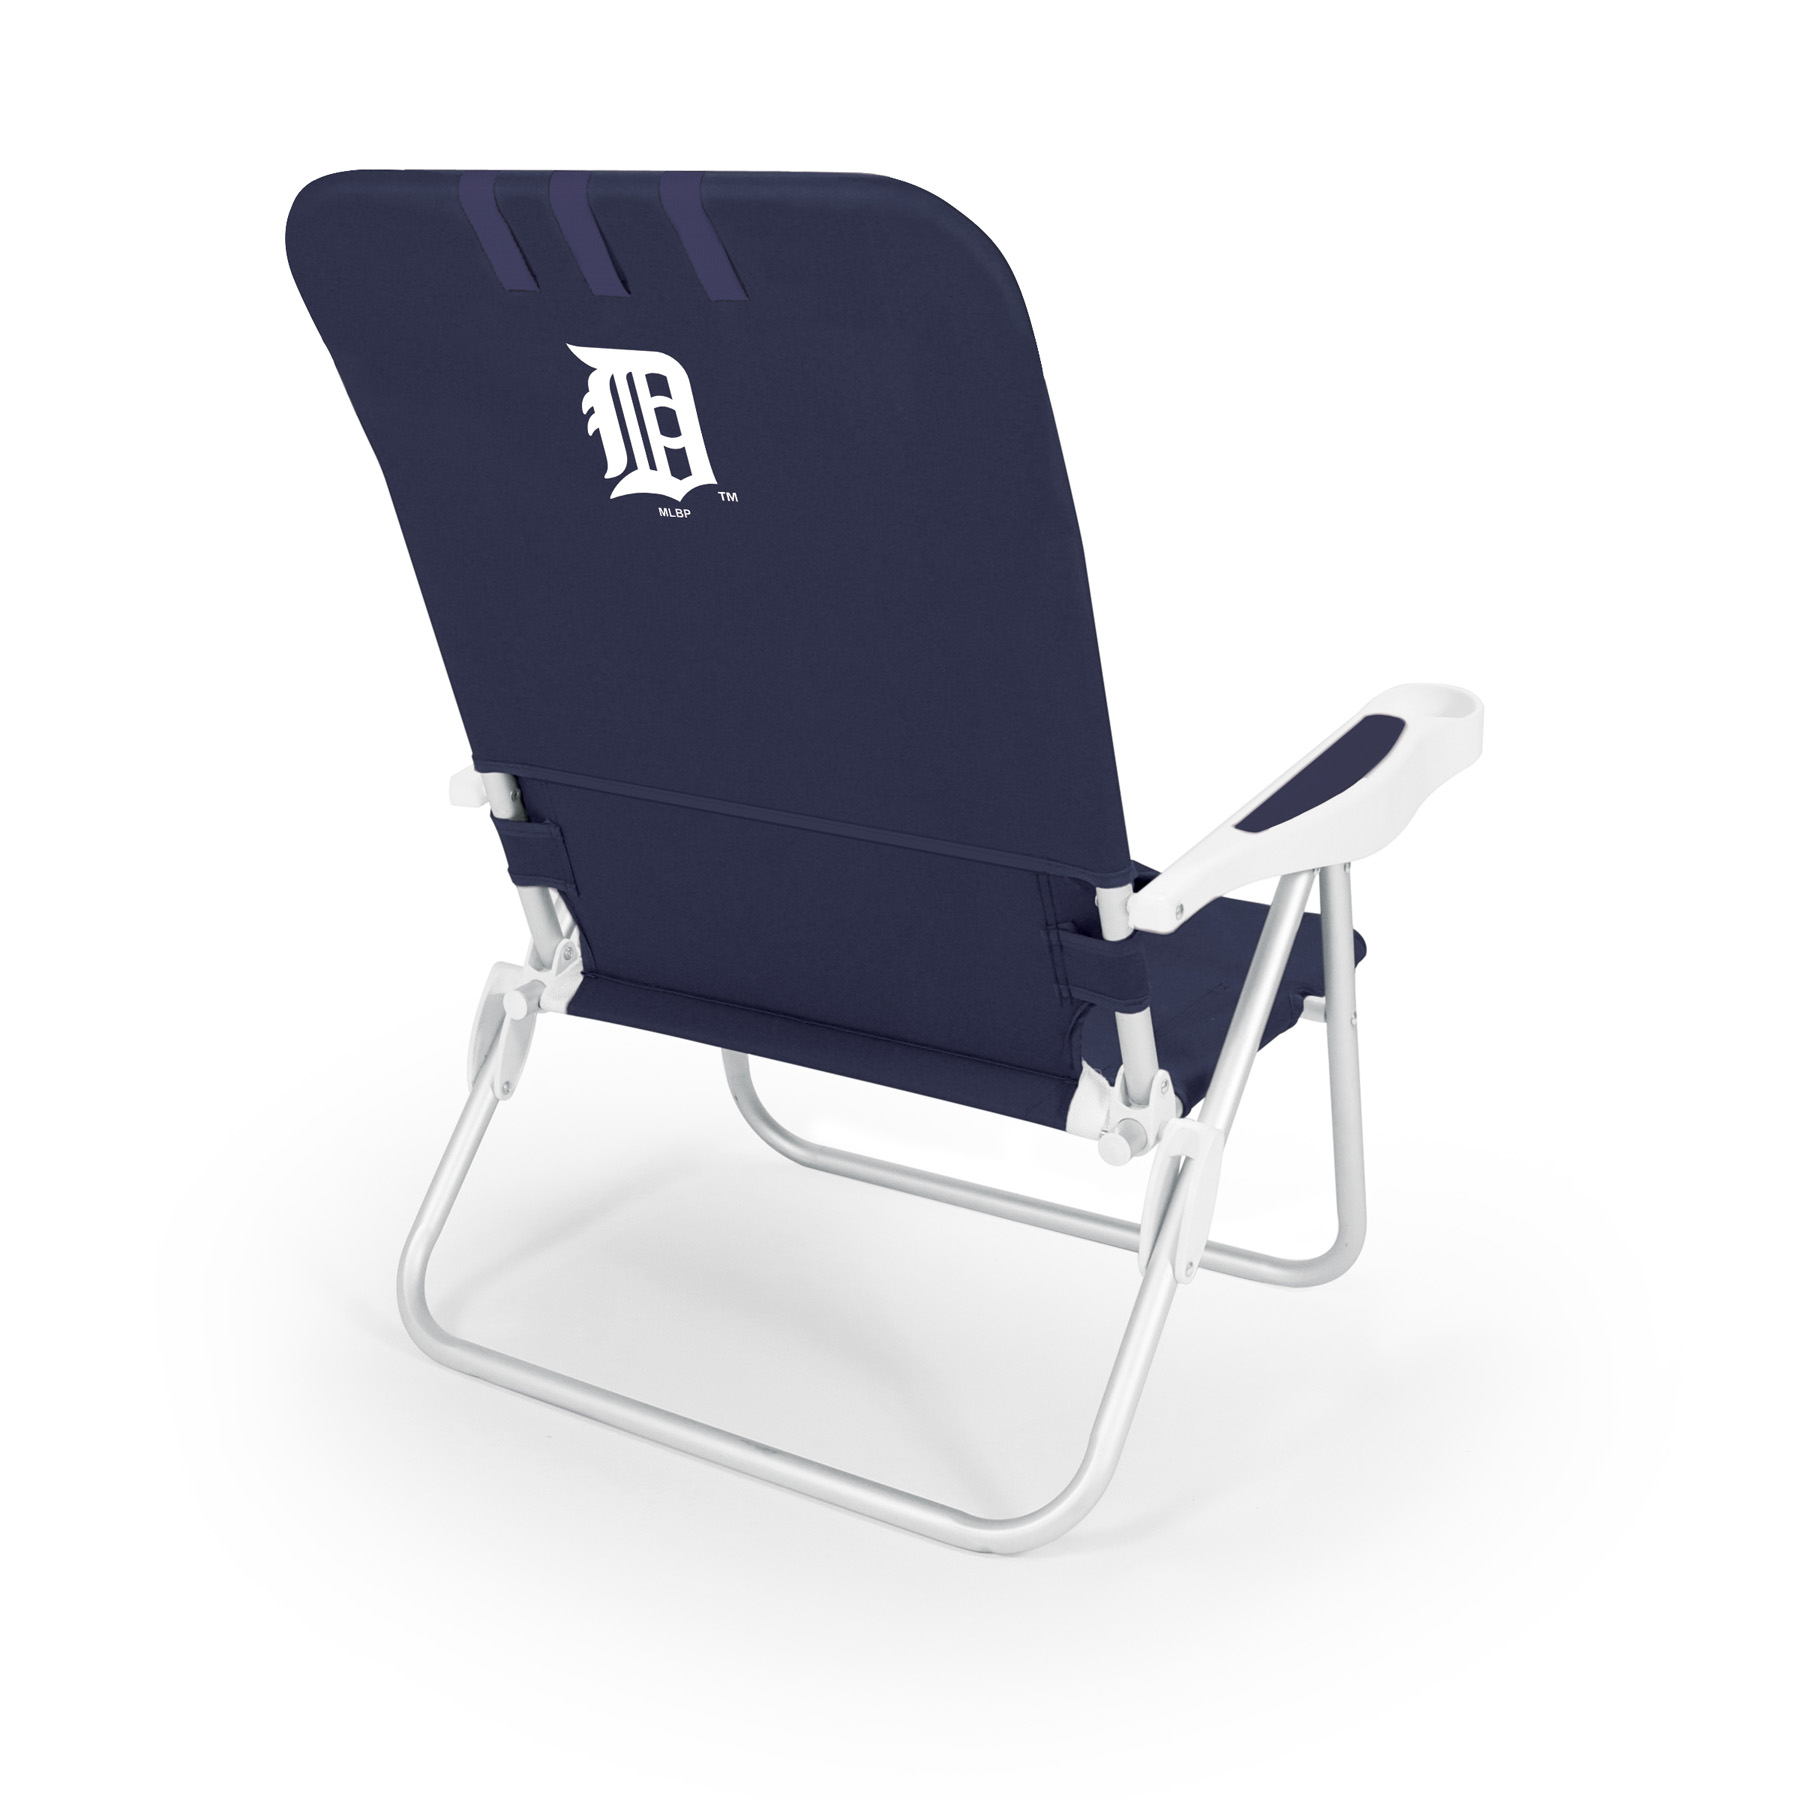 Picnic Time Monaco Beach Chair - MLB - Navy